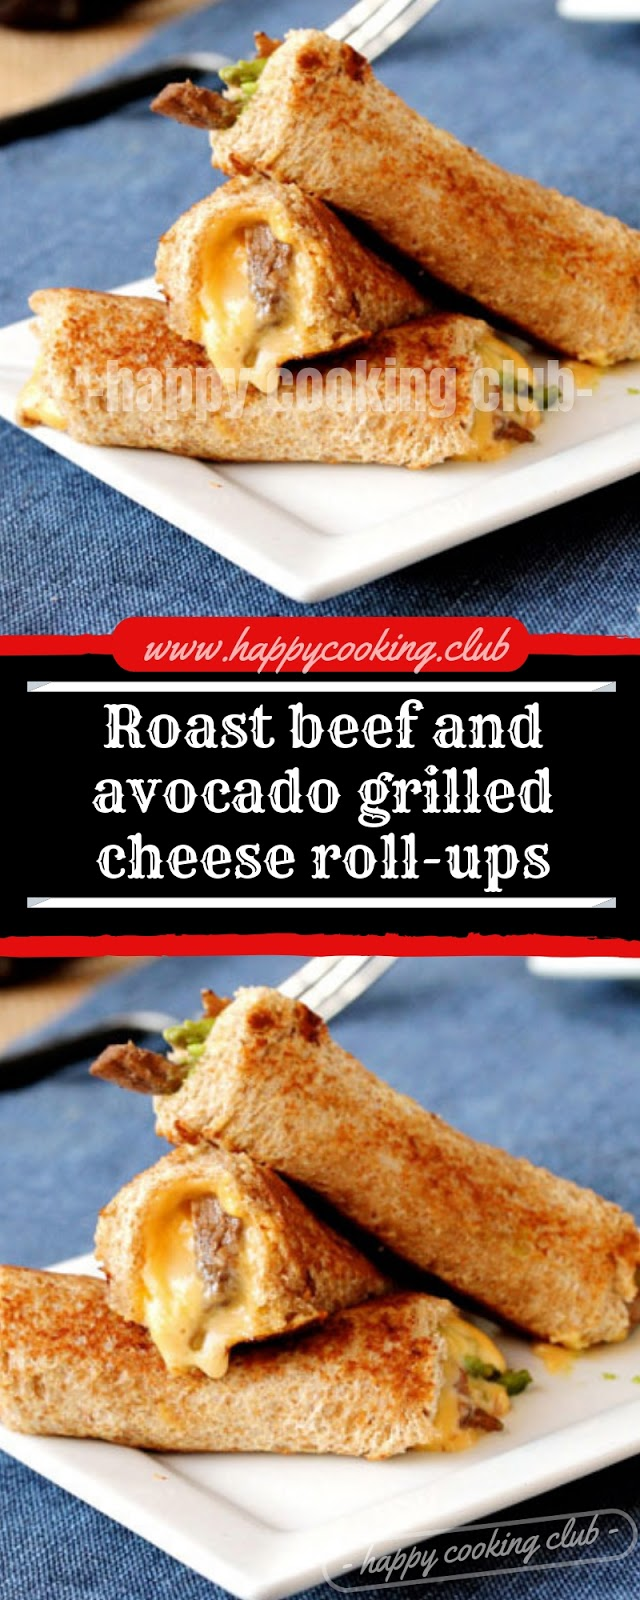 Roast beef and avocado grilled cheese roll-ups